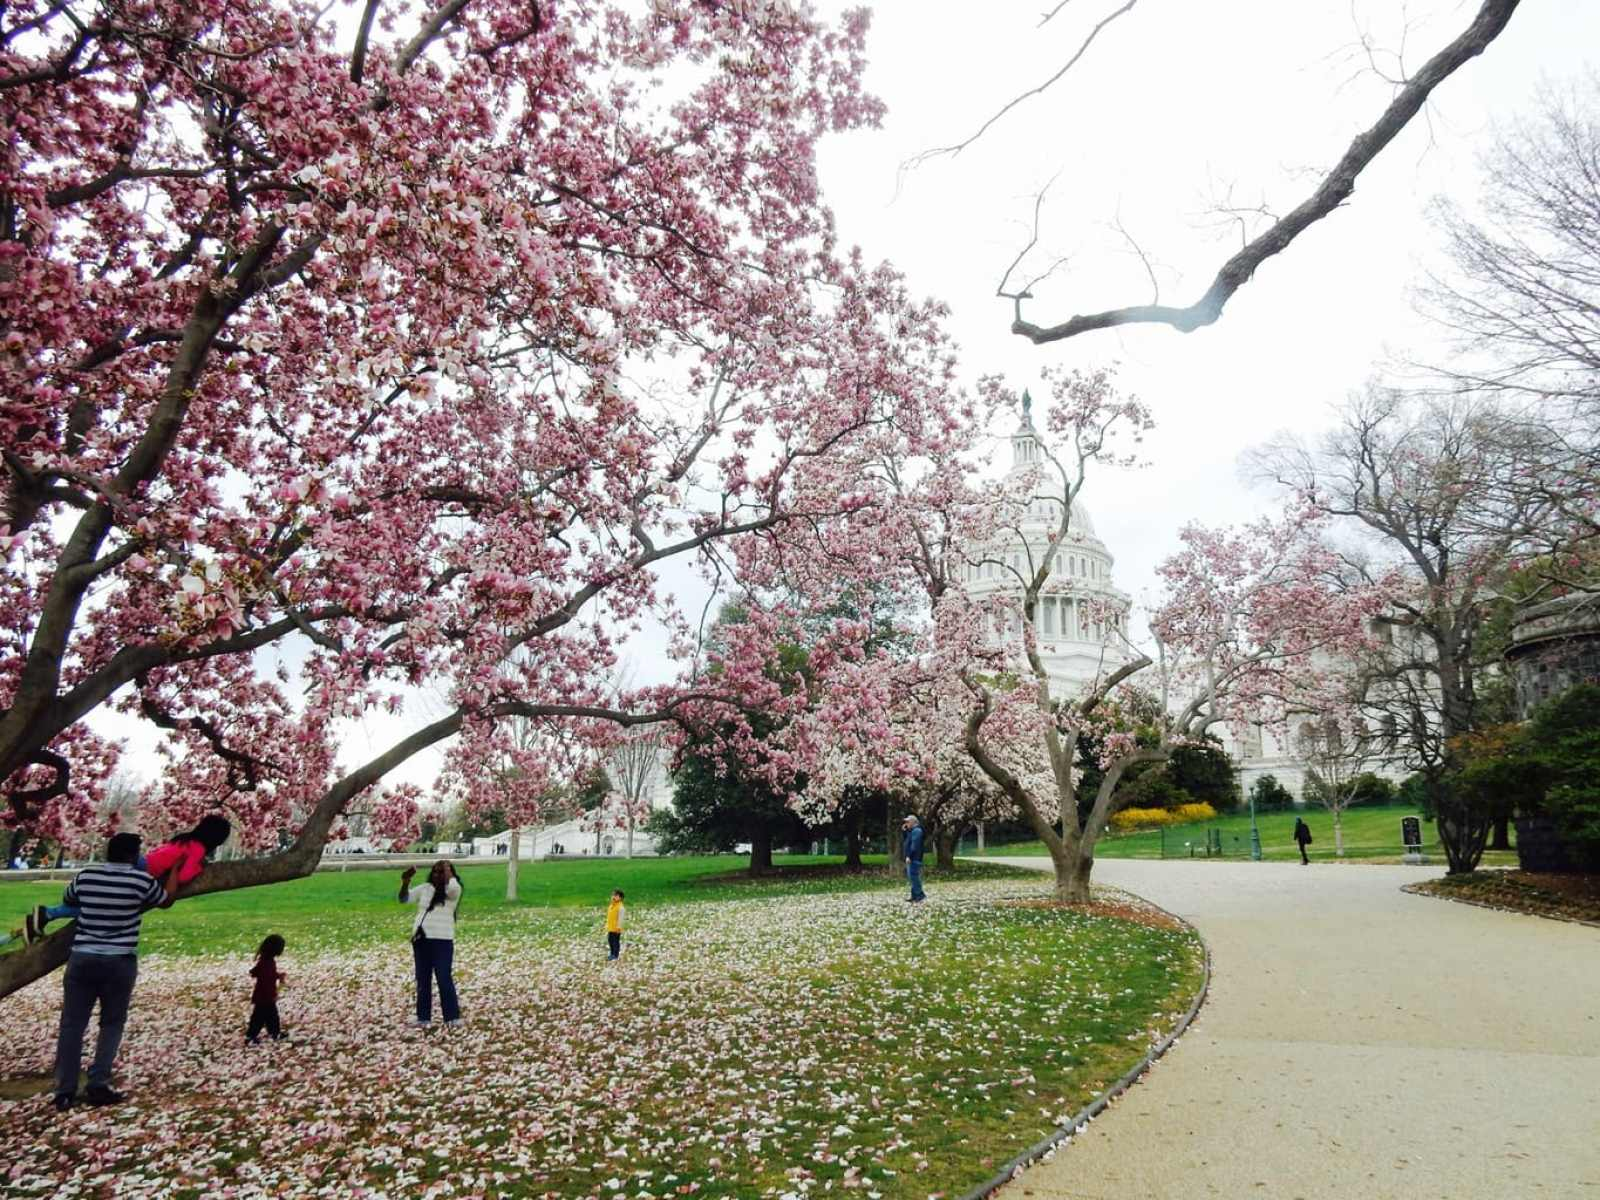 Cherry blossom season is one of the best times to plan for romantic getaways East Coast.